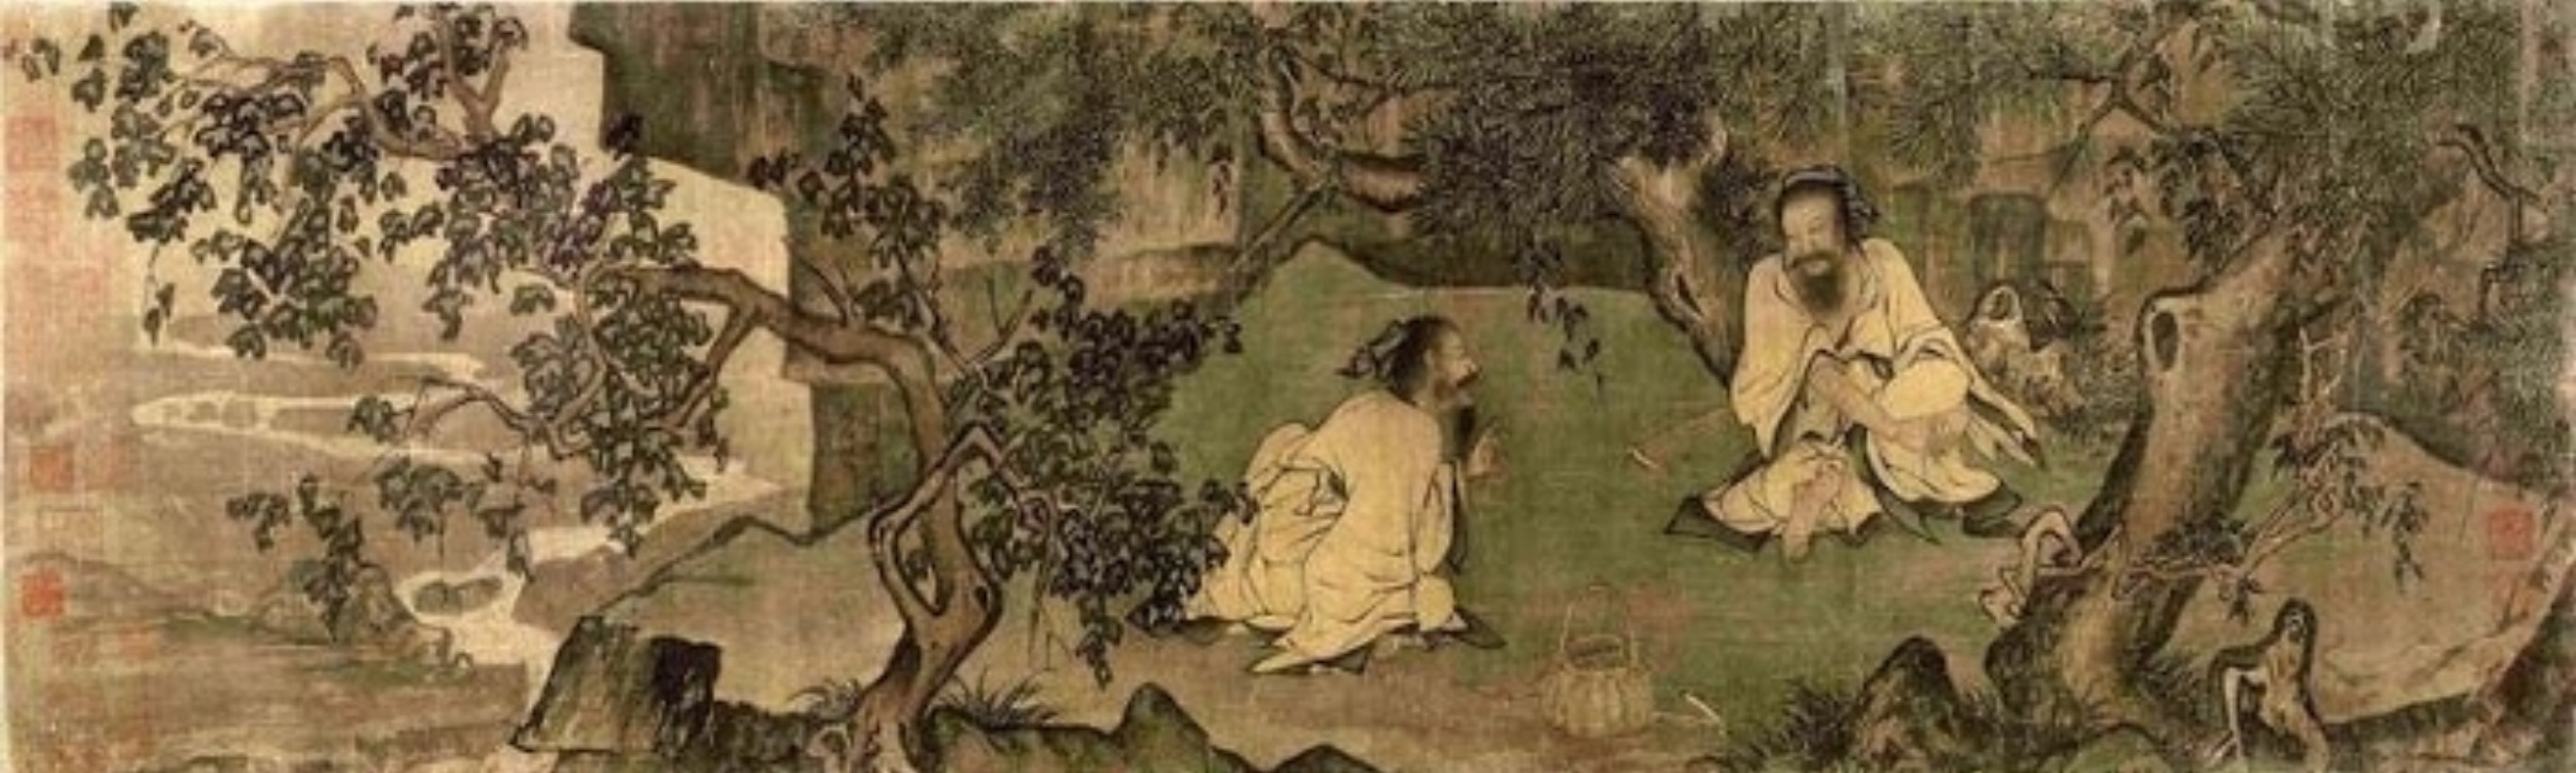 'Picking Grass', by Li Tang of the Northern Song 宋李唐《採薇圖》